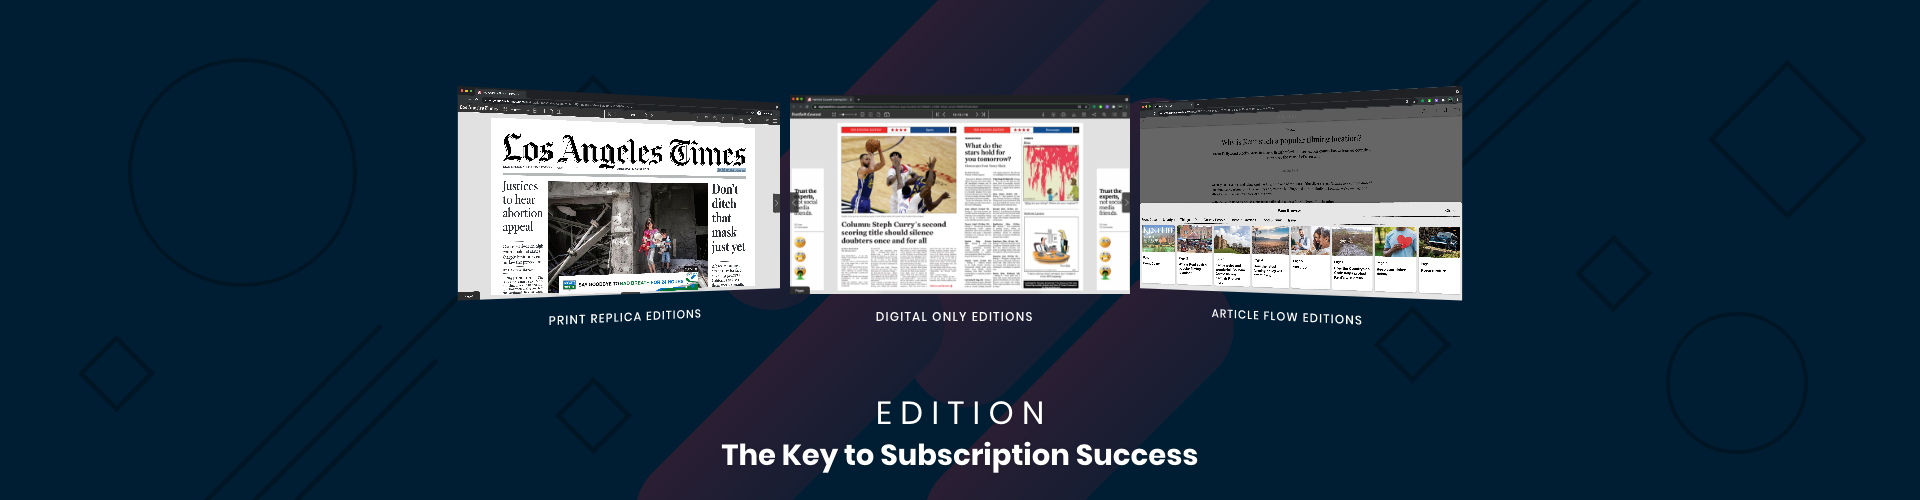 Edition – The Key to Subscription Success